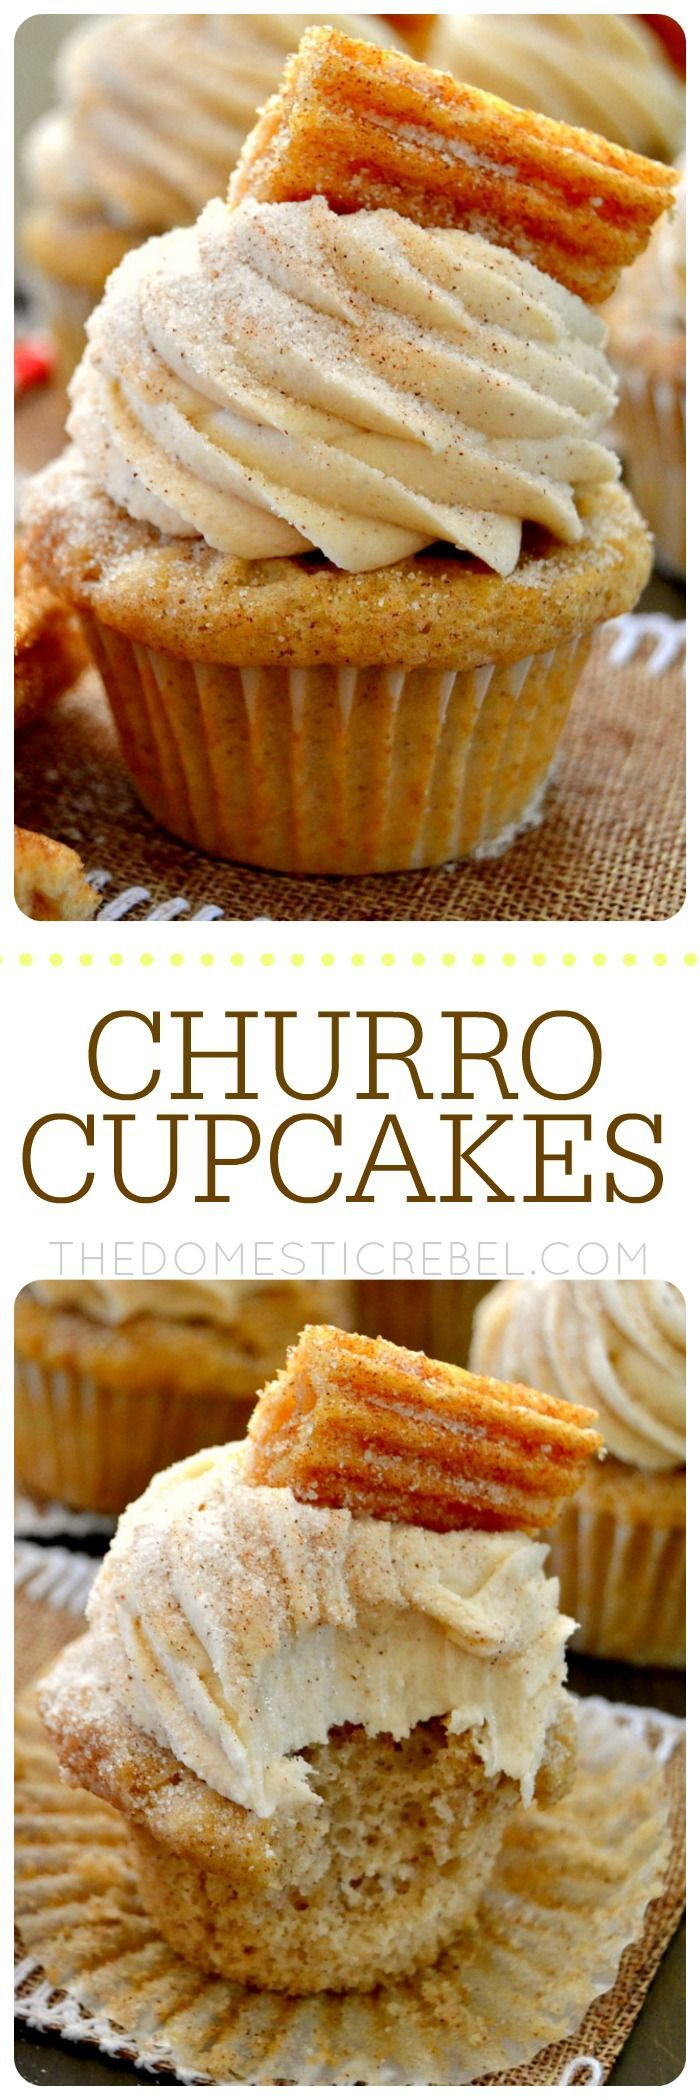 These Churro Cupcakes are bursting with cinnamon sugary goodness in every bite…